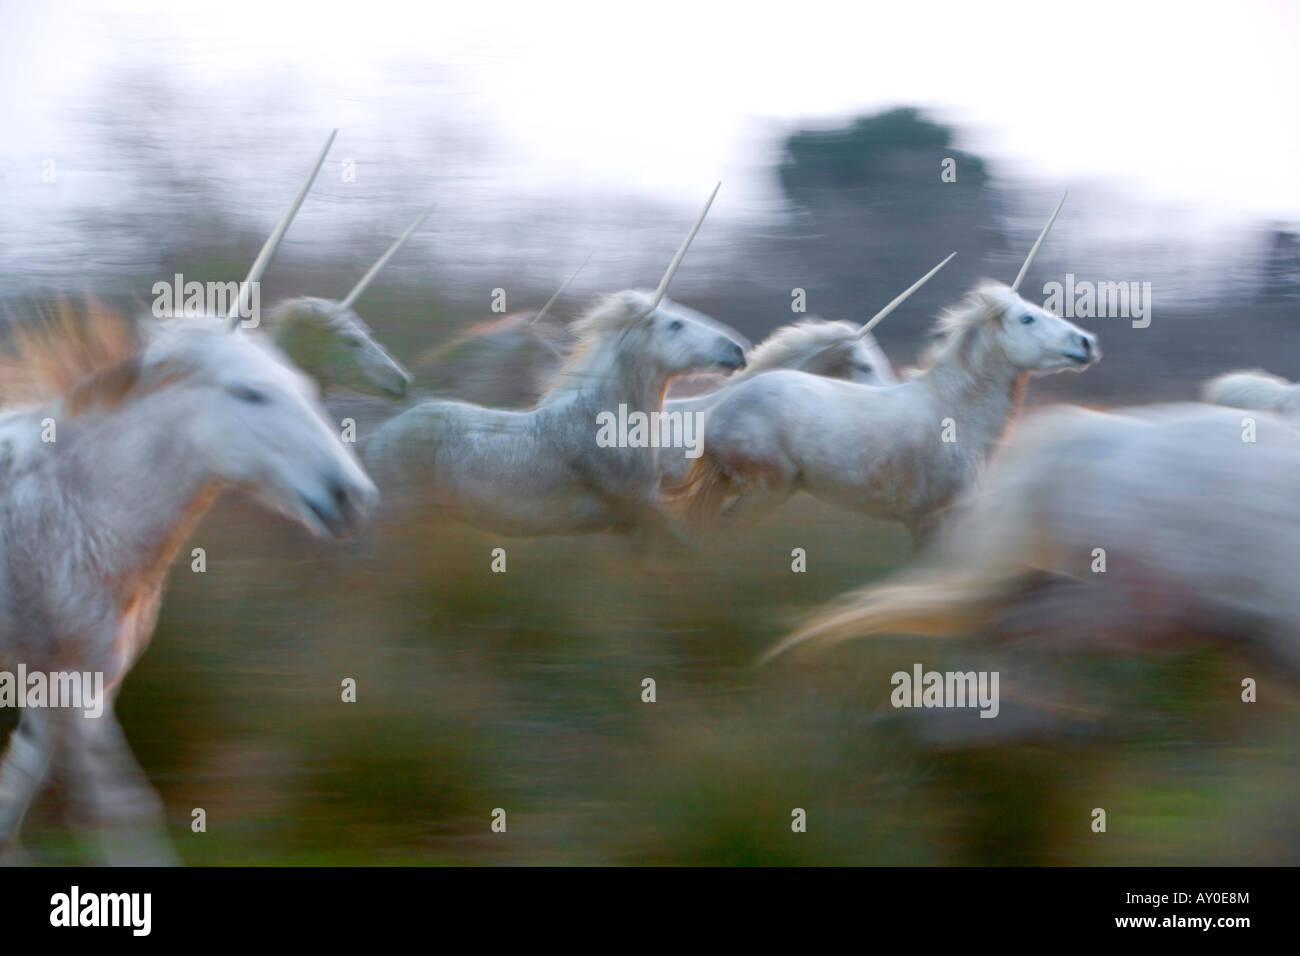 Unicorn herd - Stock Image